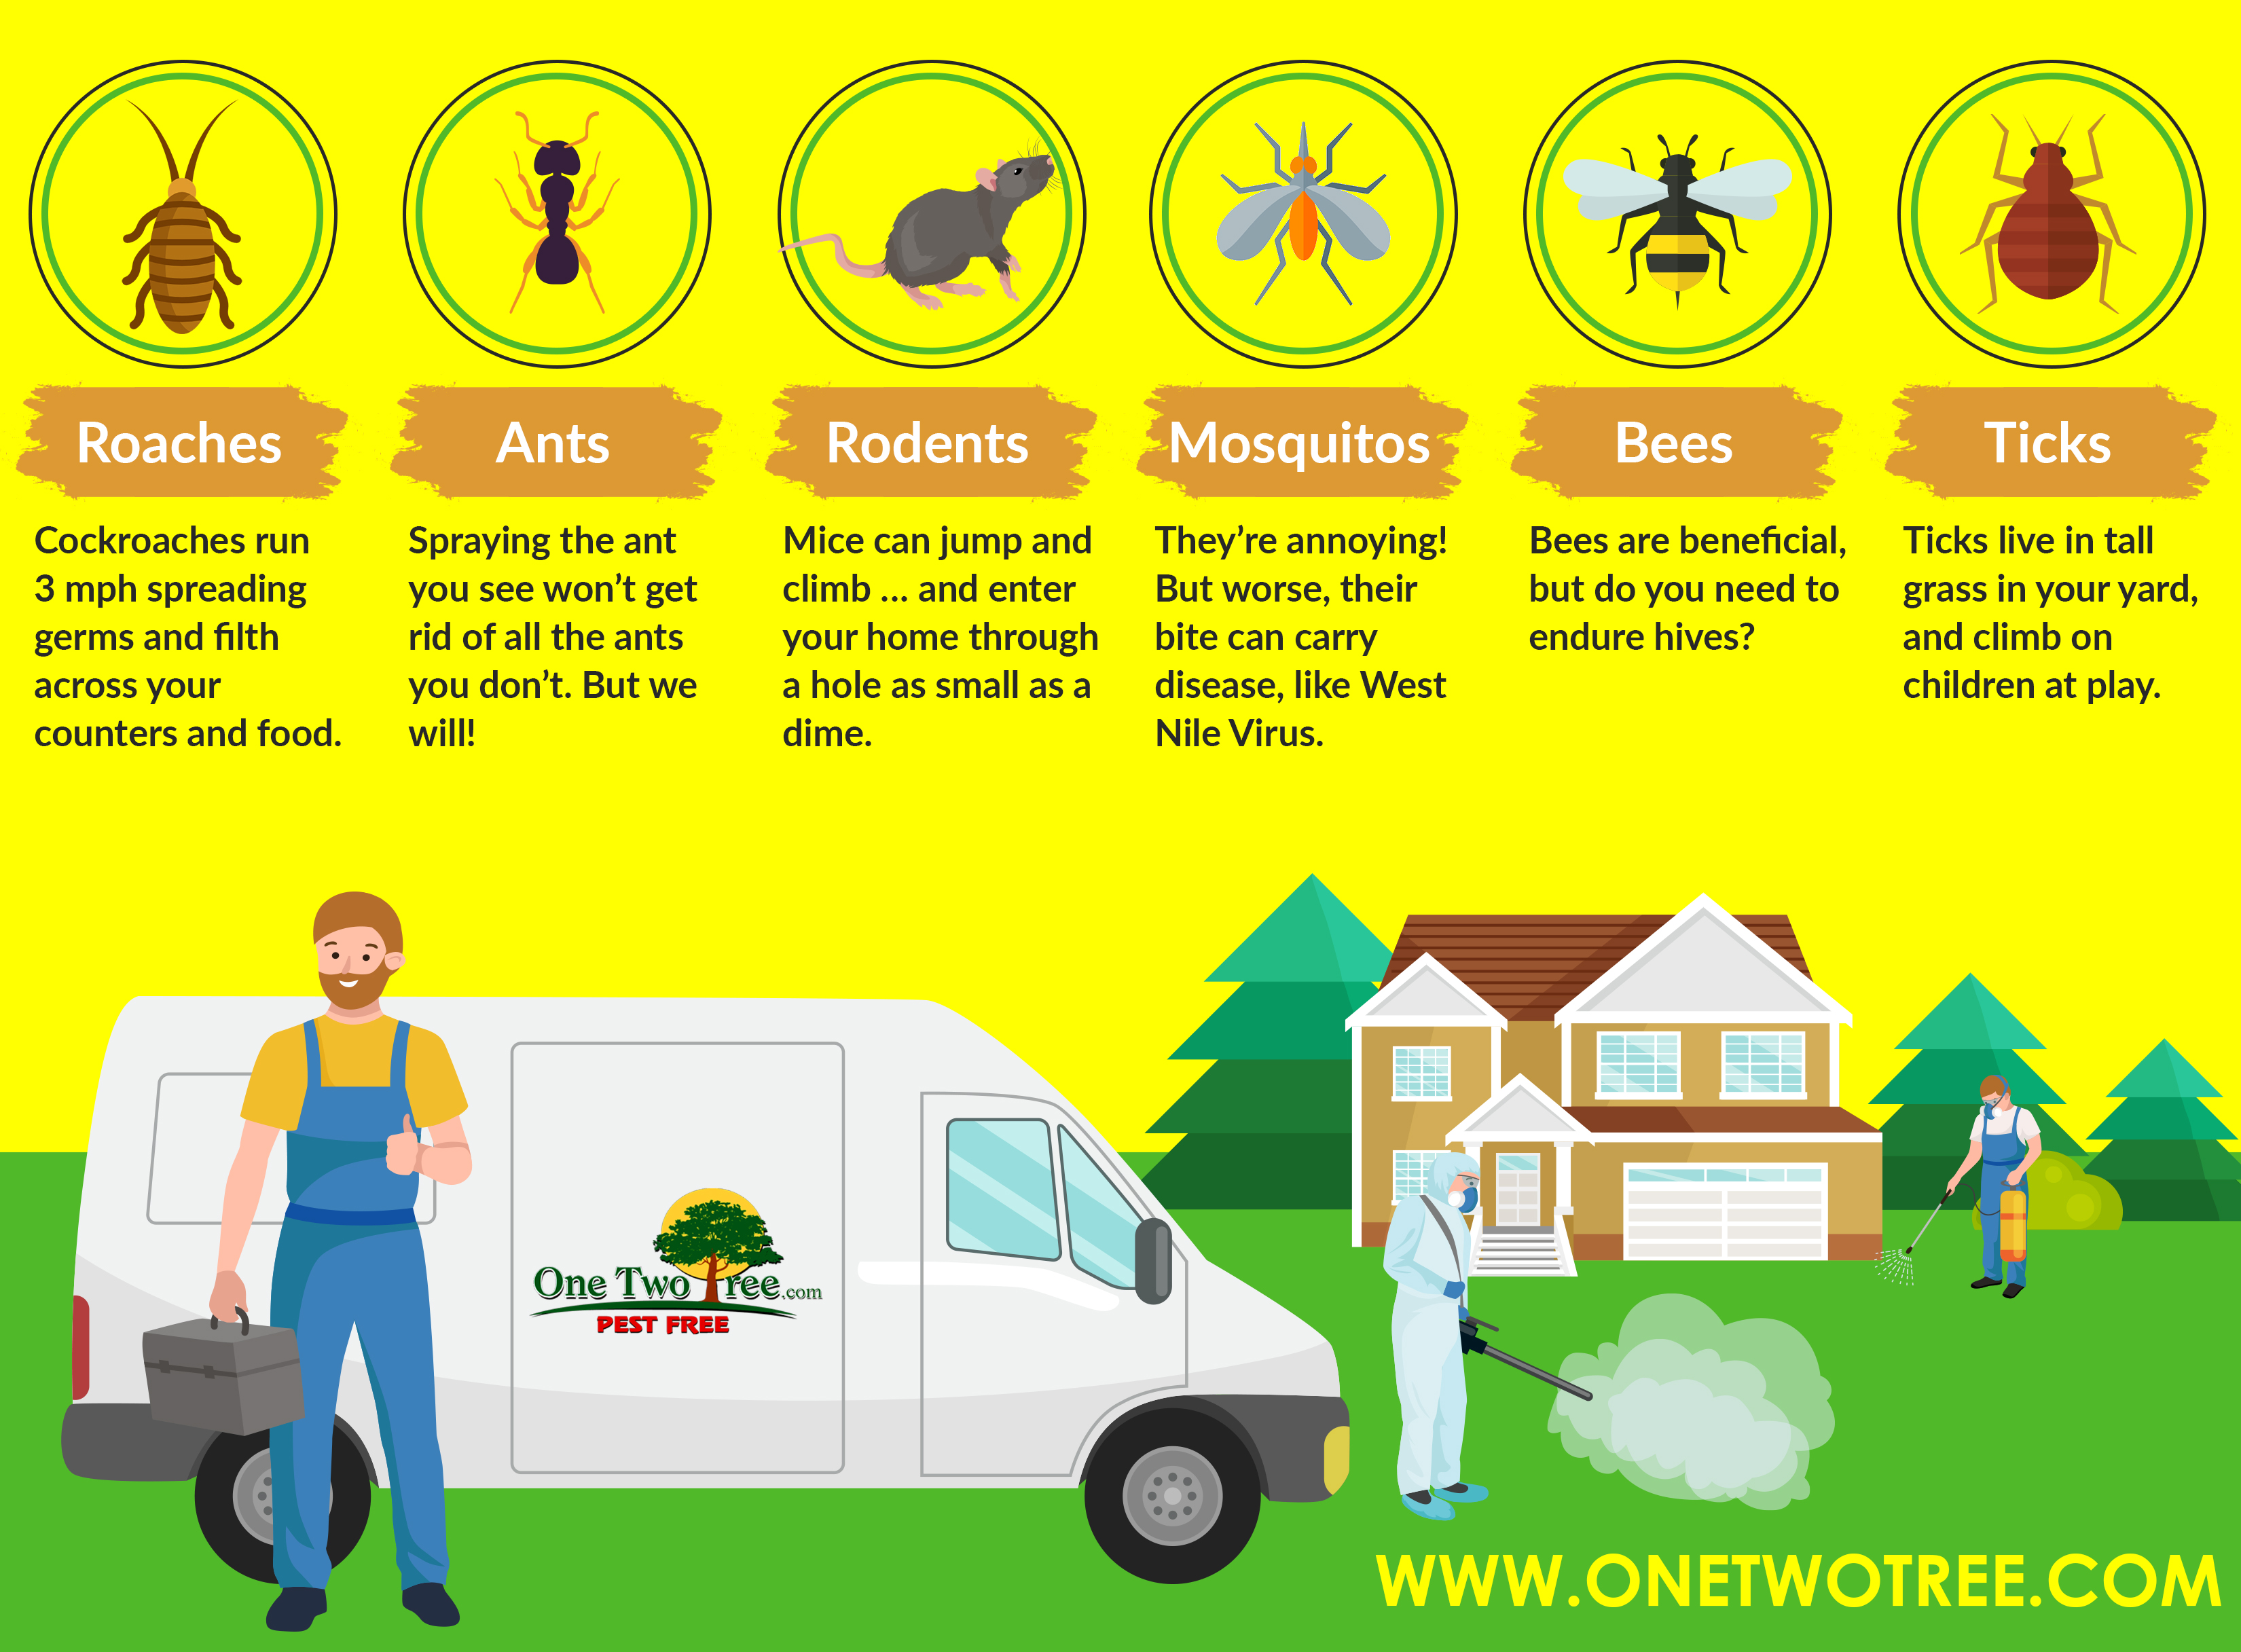 pest control infographic showing common pest found in South Florida